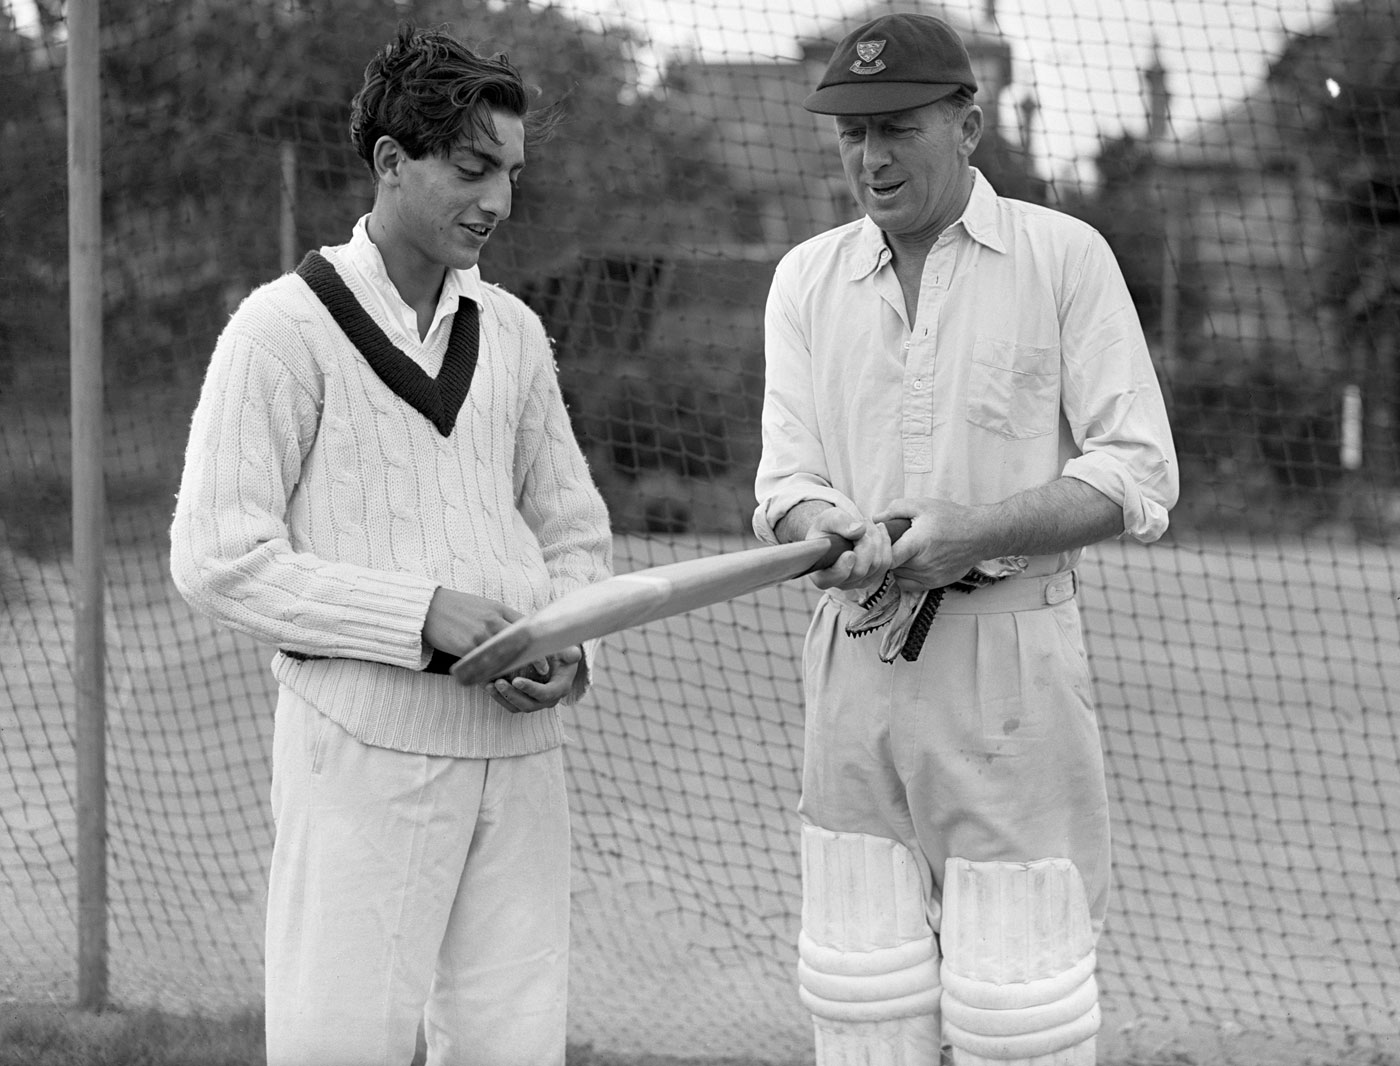 Vintage photos of cricketers accept